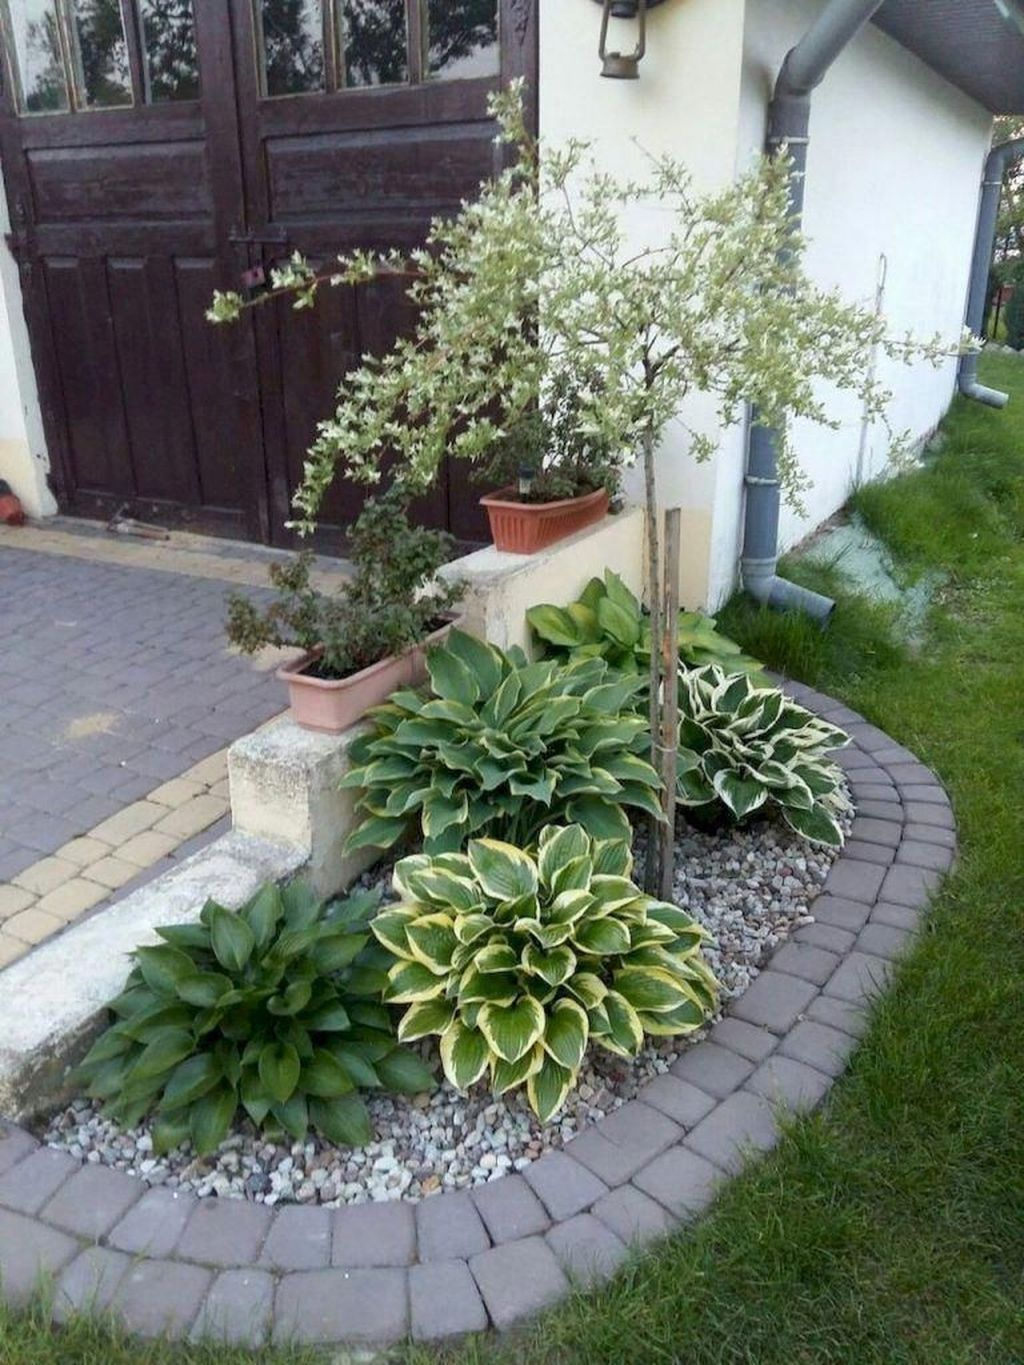 39 Excellent Front Yard Landscaping Ideas To Copy Asap #frontyarddesign